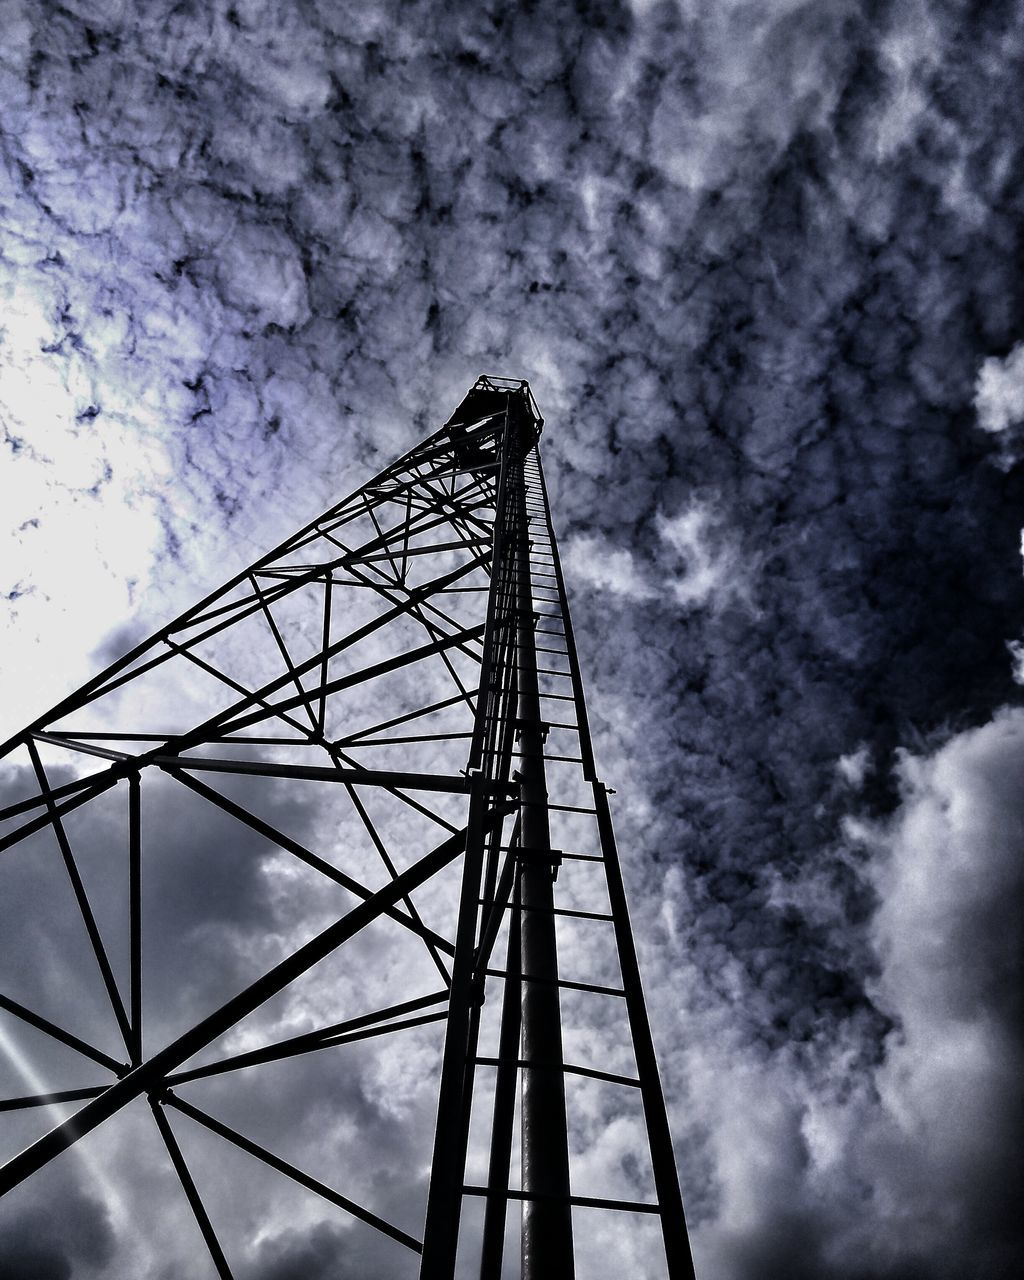 cloud - sky, sky, low angle view, no people, architecture, built structure, day, outdoors, nature